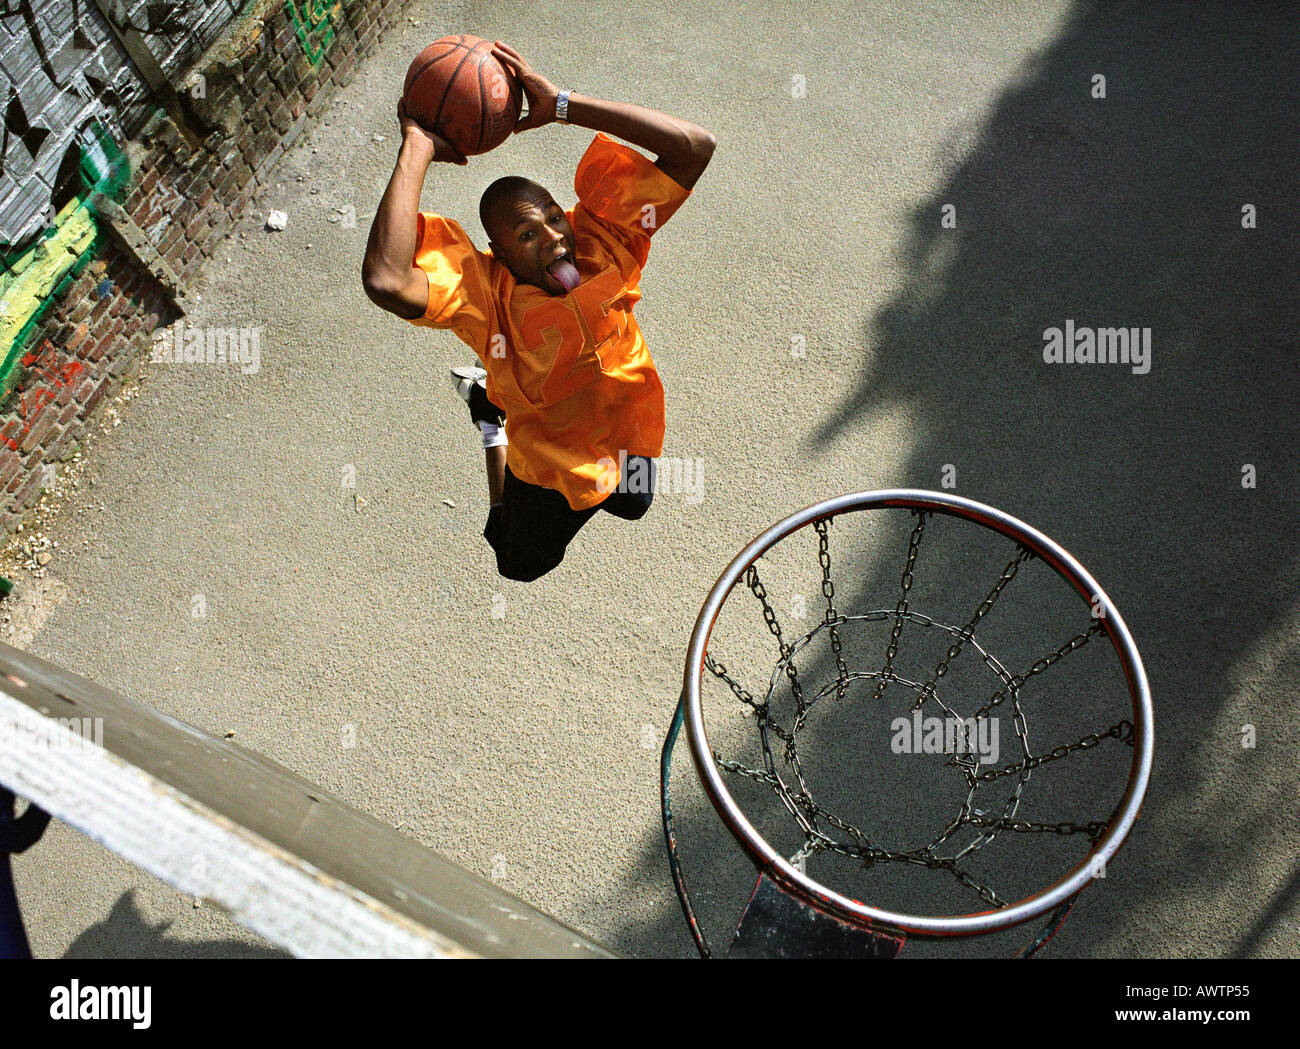 Man going up for a basketball dunk, shot from above Stock Photo